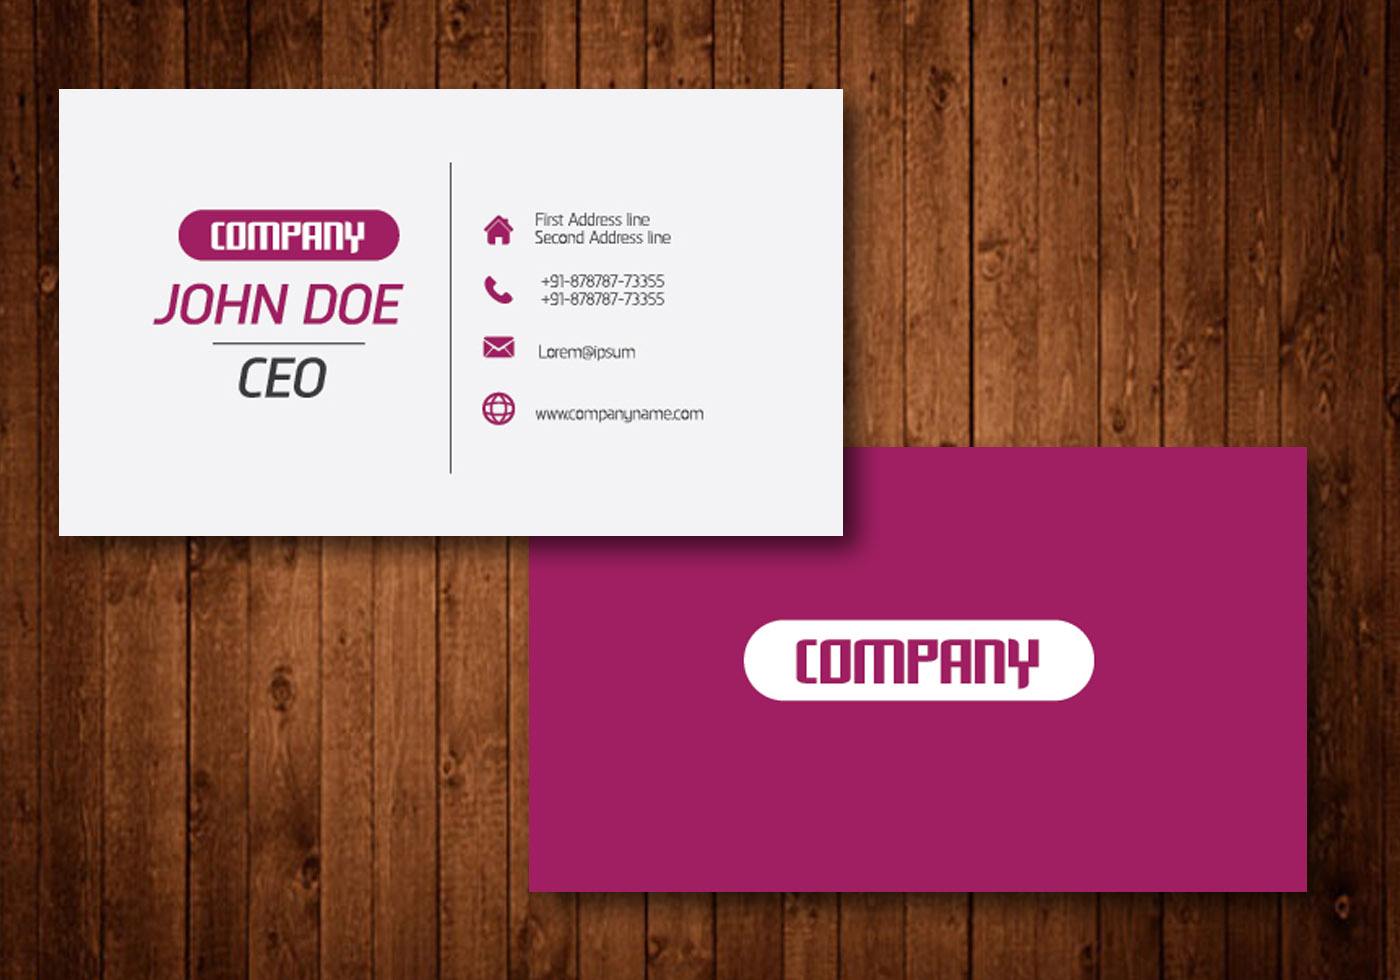 Creative Business Card - Download Free Vector Art, Stock Graphics ...